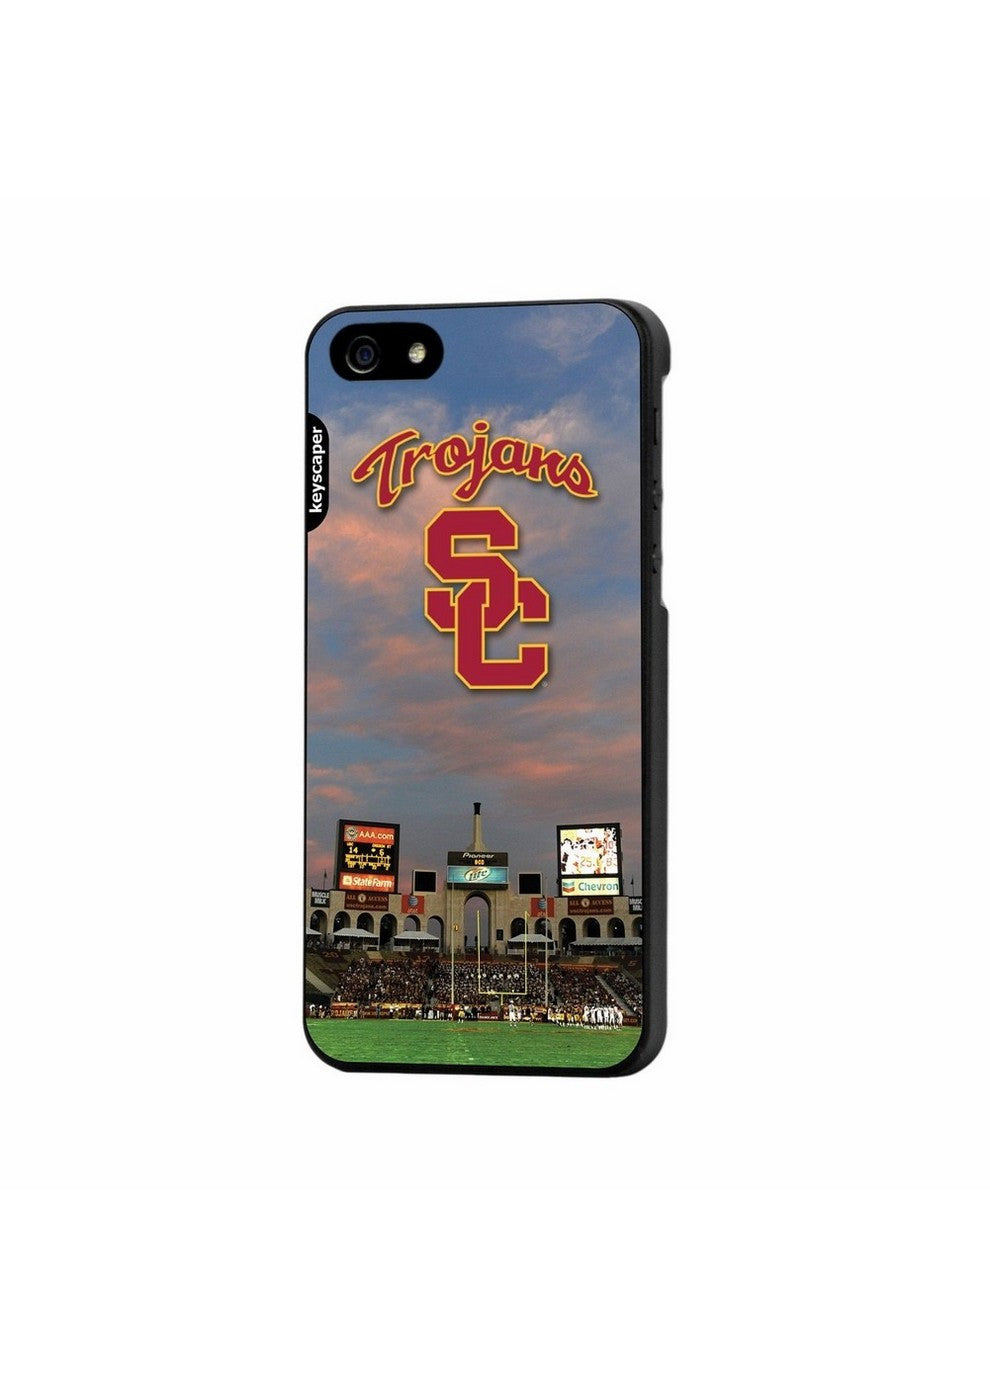 Ncaa Iphone 5 Stadium Night Usc Trojans SPI-KEYCUSCIP5SN